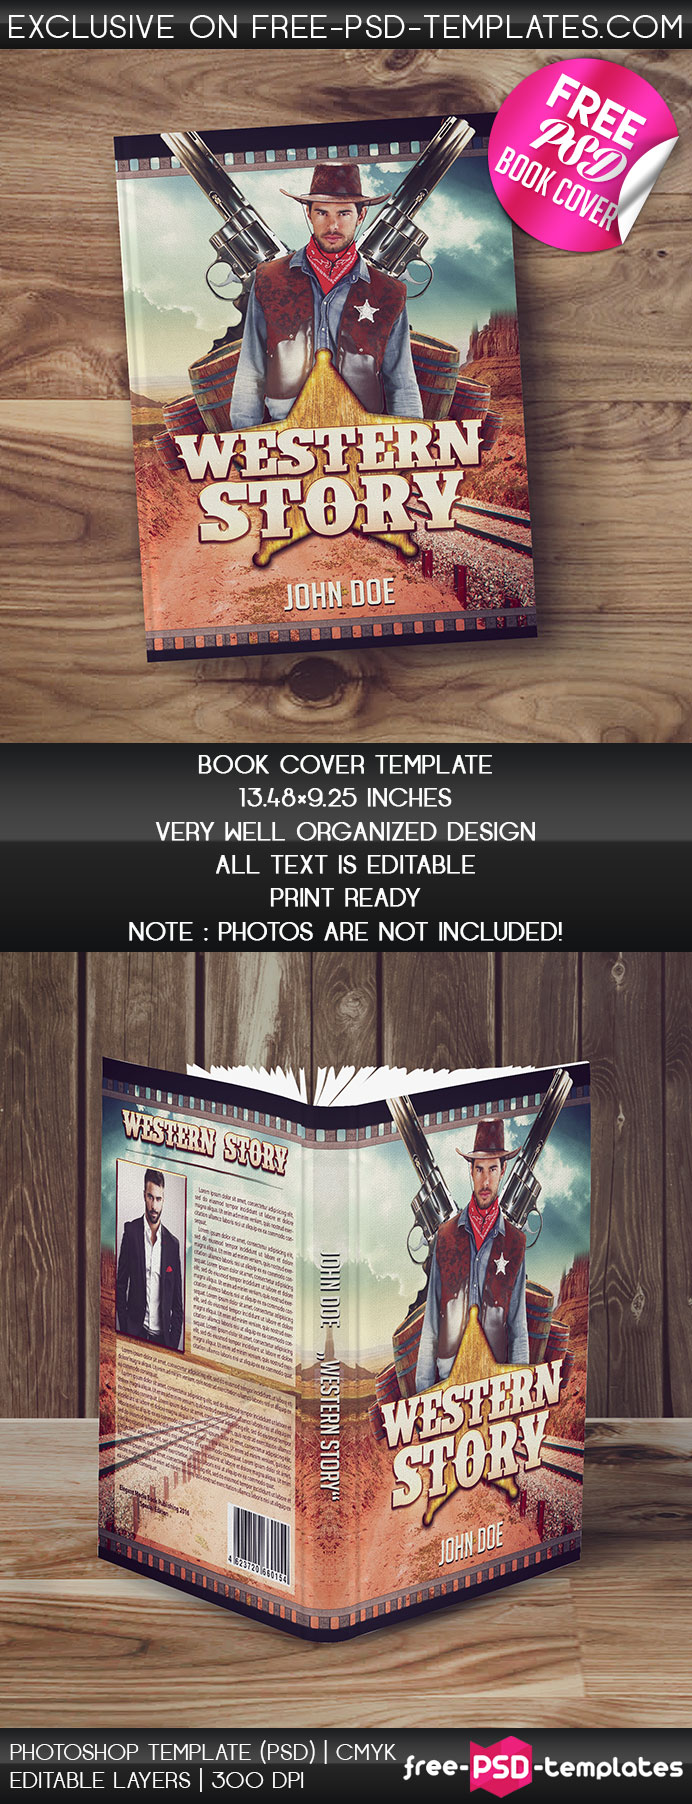 Preview_Book_Cover_Template